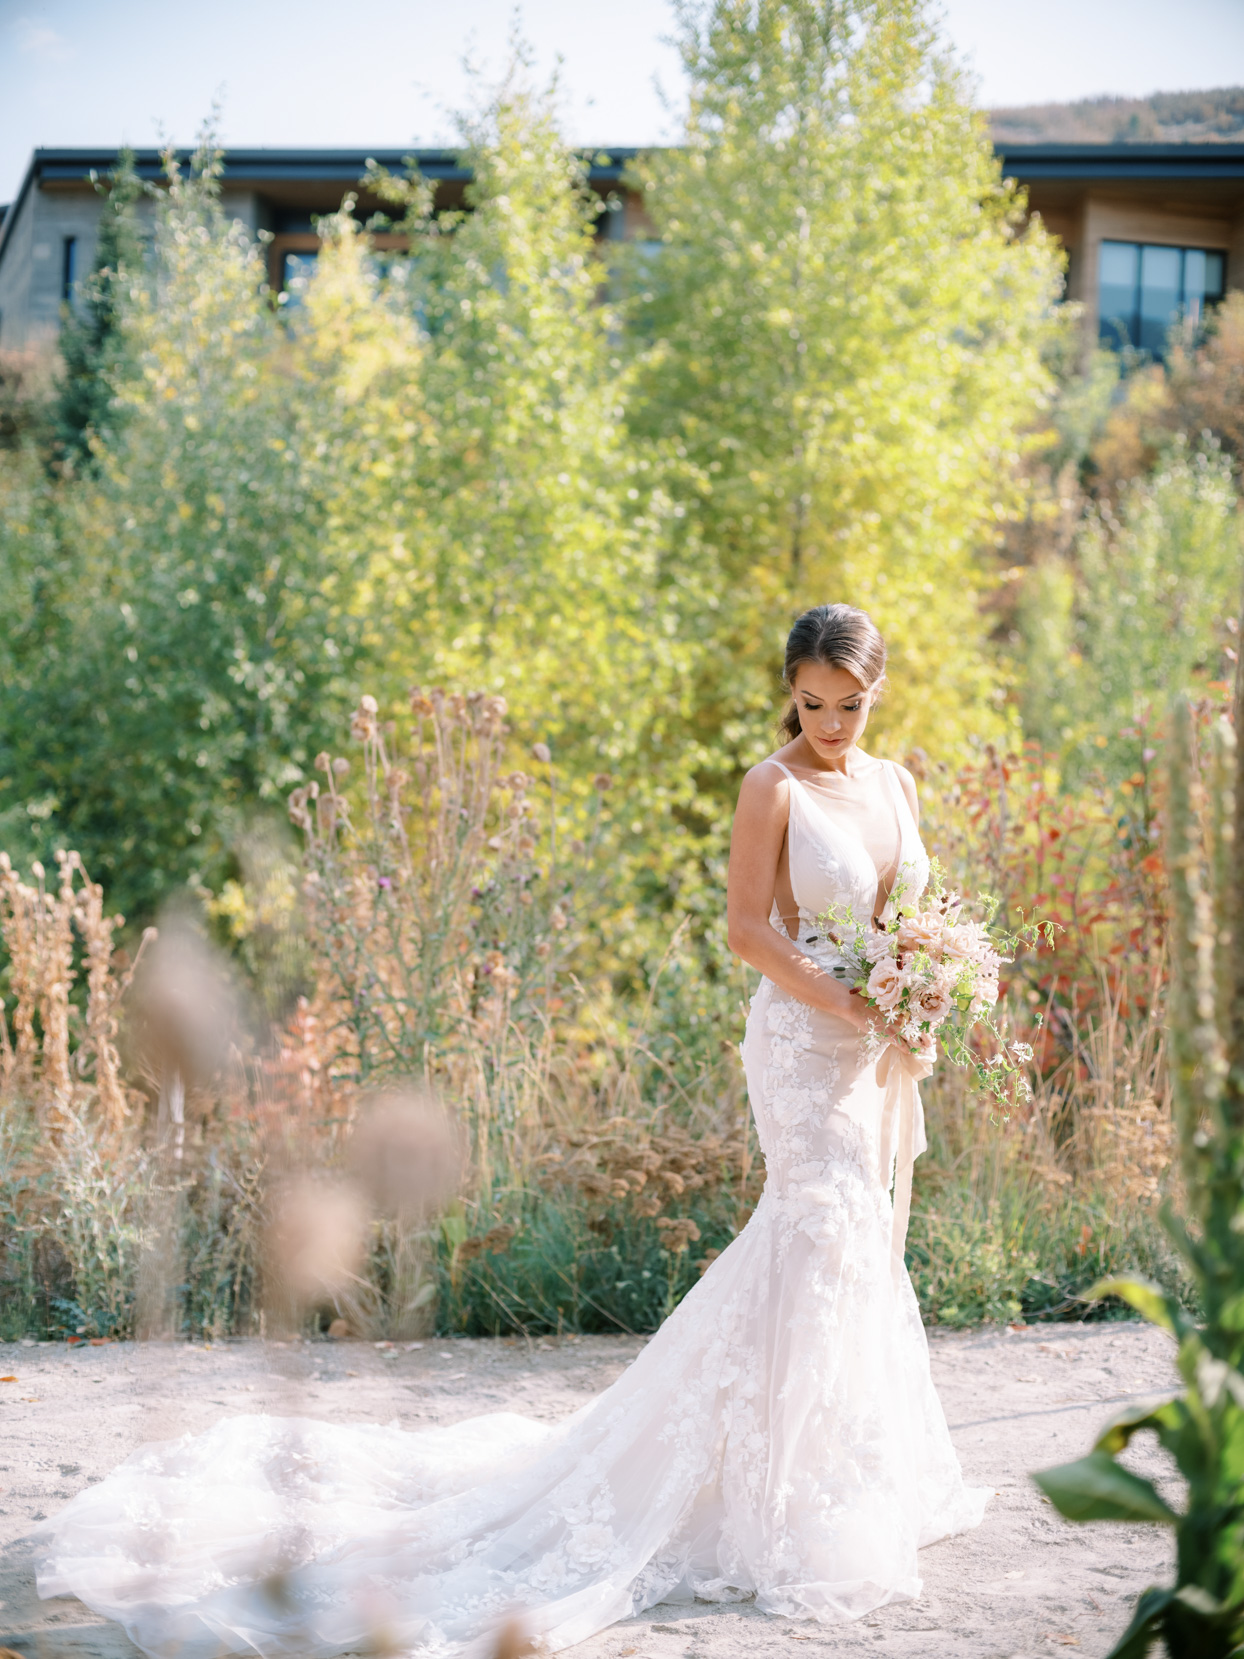 bride wearing plunging v-neck wedding dress with long train